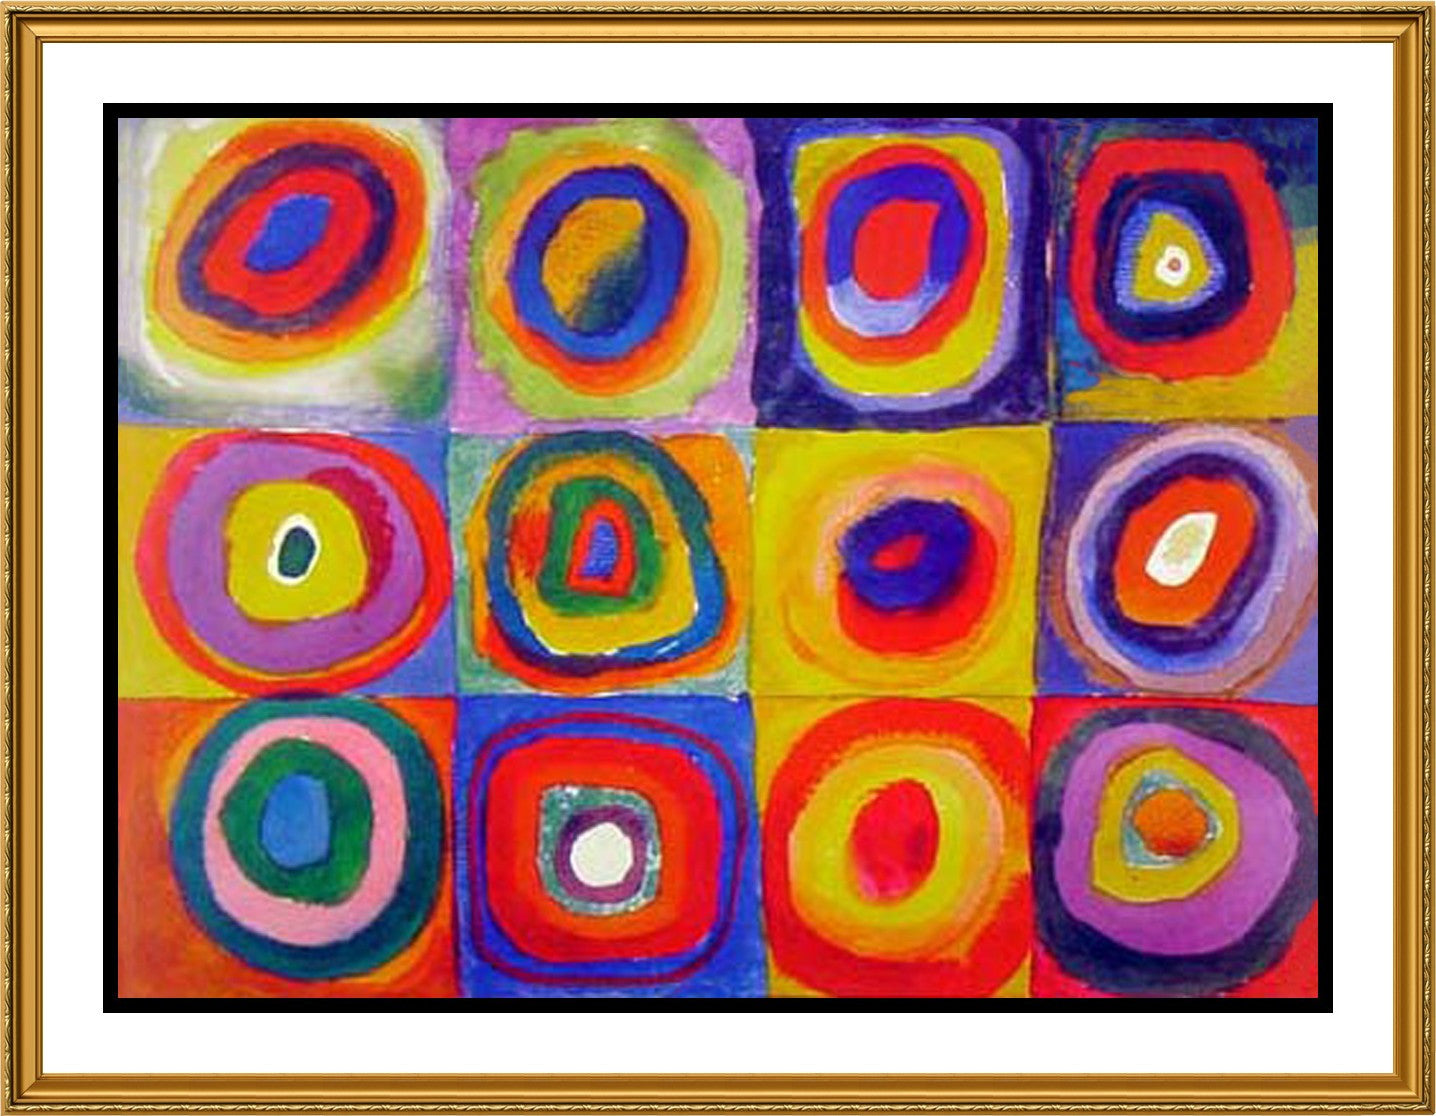 Concentric Circles By Artist Wassily Kandinsky Counted Cross Stitch Pattern